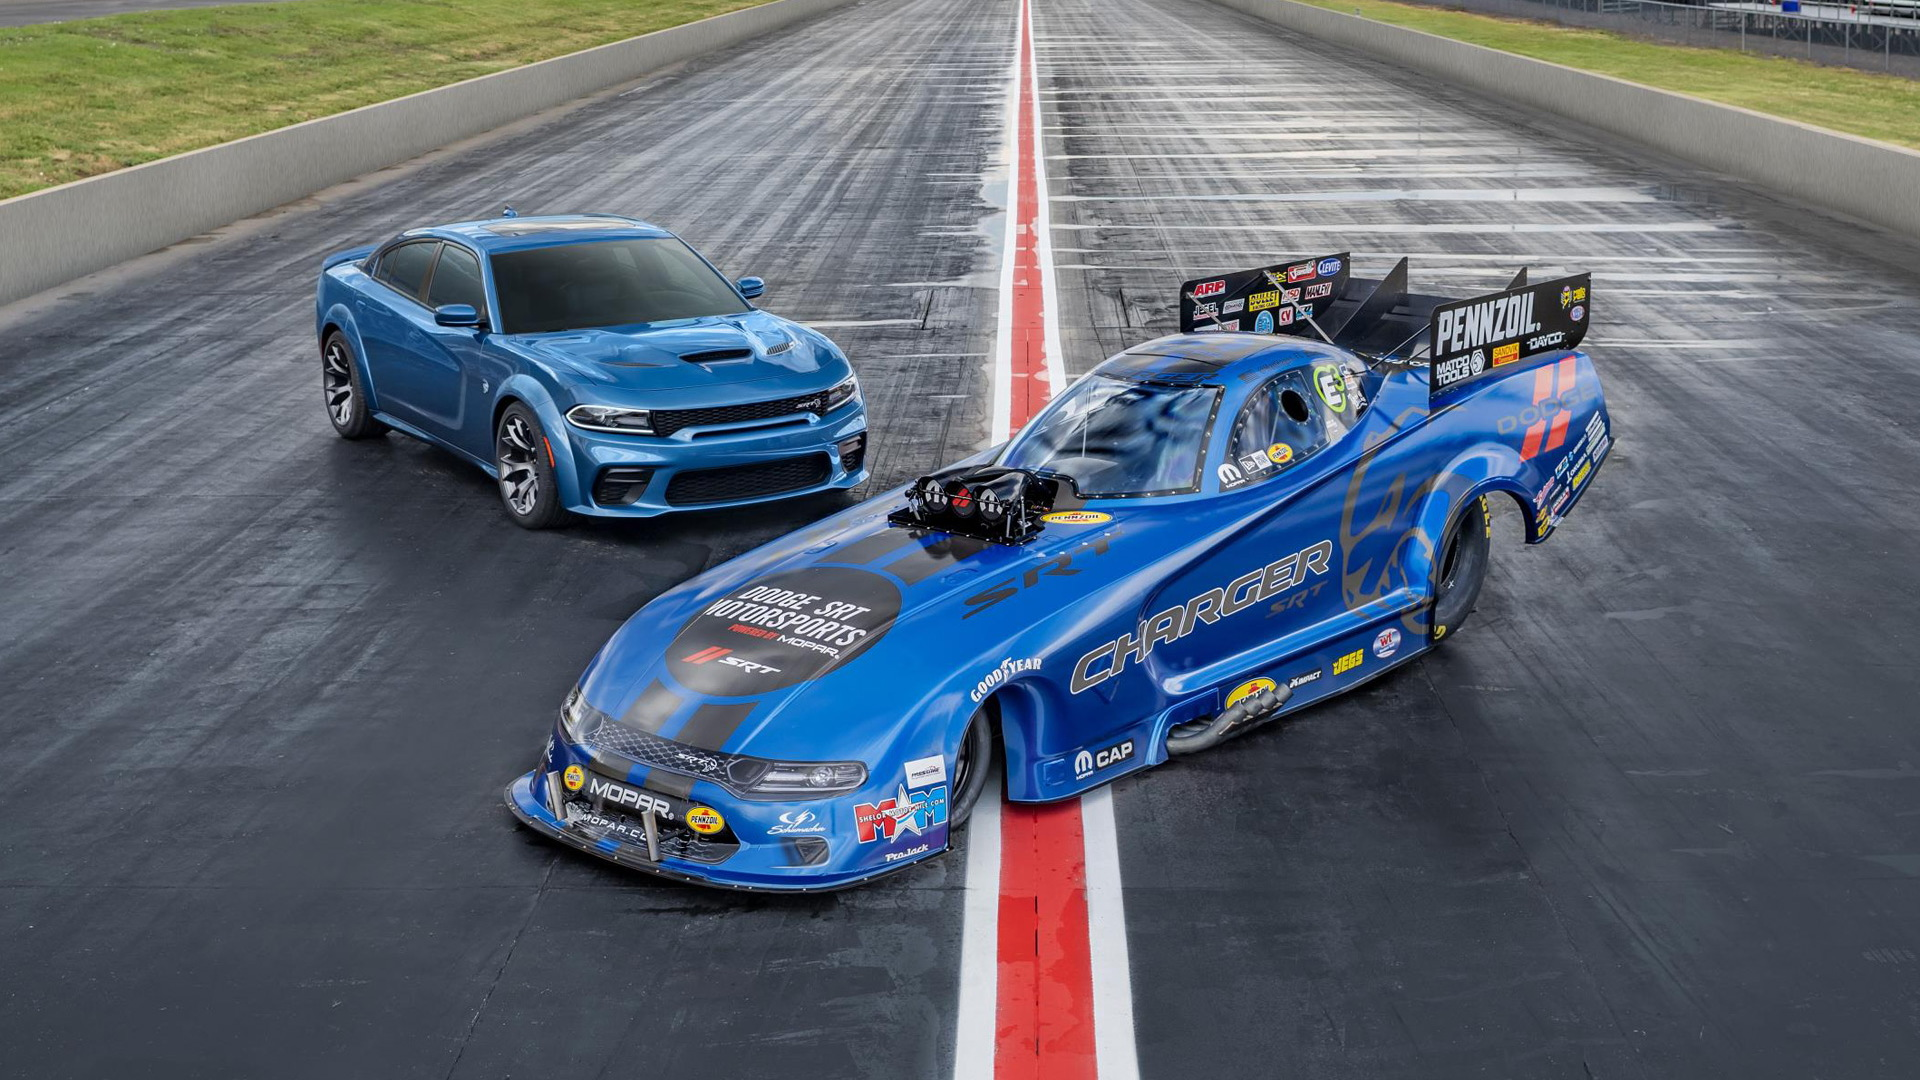 2019 Mopar Dodge Charger SRT Hellcat Widebody NHRA Funny Car